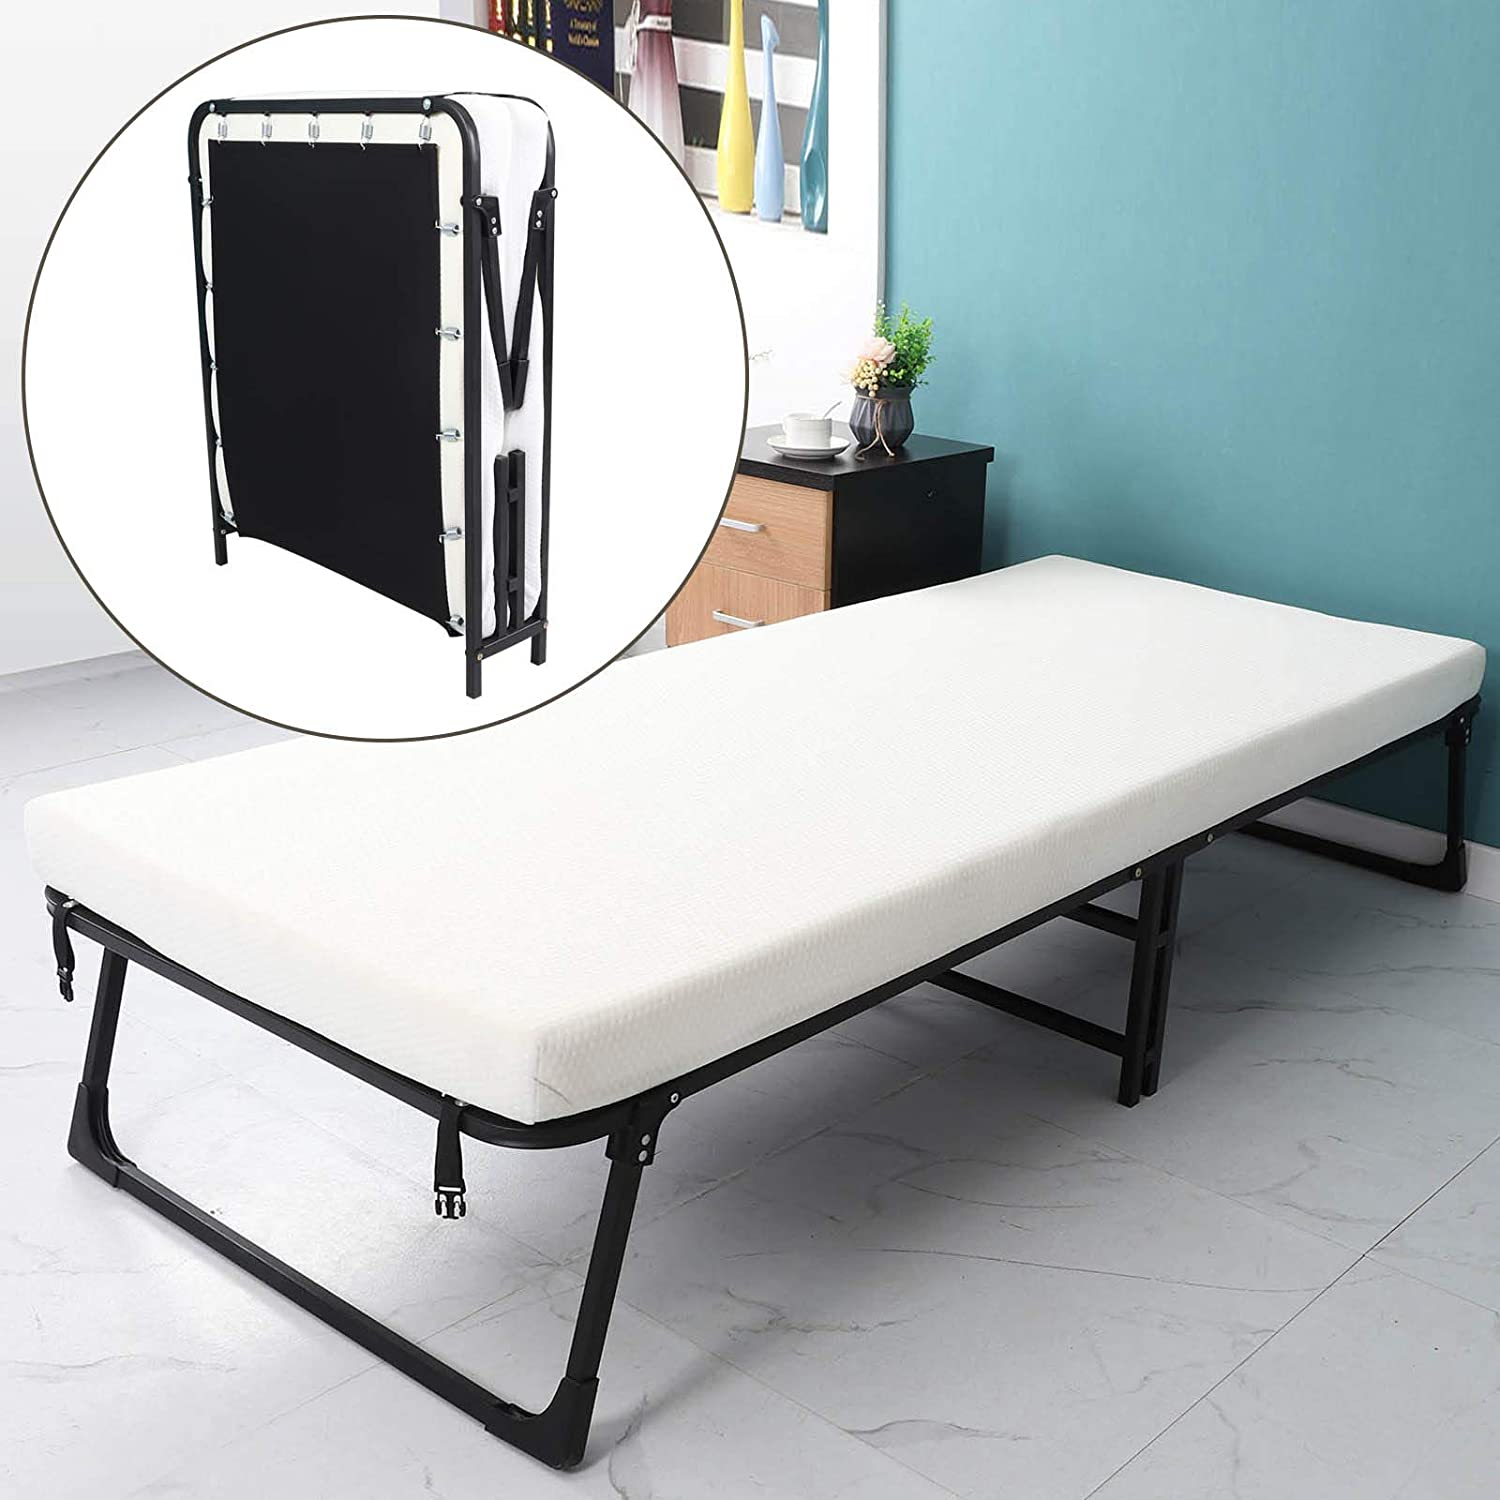 Folding Bed and Gel Thick Memory Foam Mattress with Wheels Guest Beds Portable Foldable Bed (74.8x31.4x10.6 inch, New Arrivel)